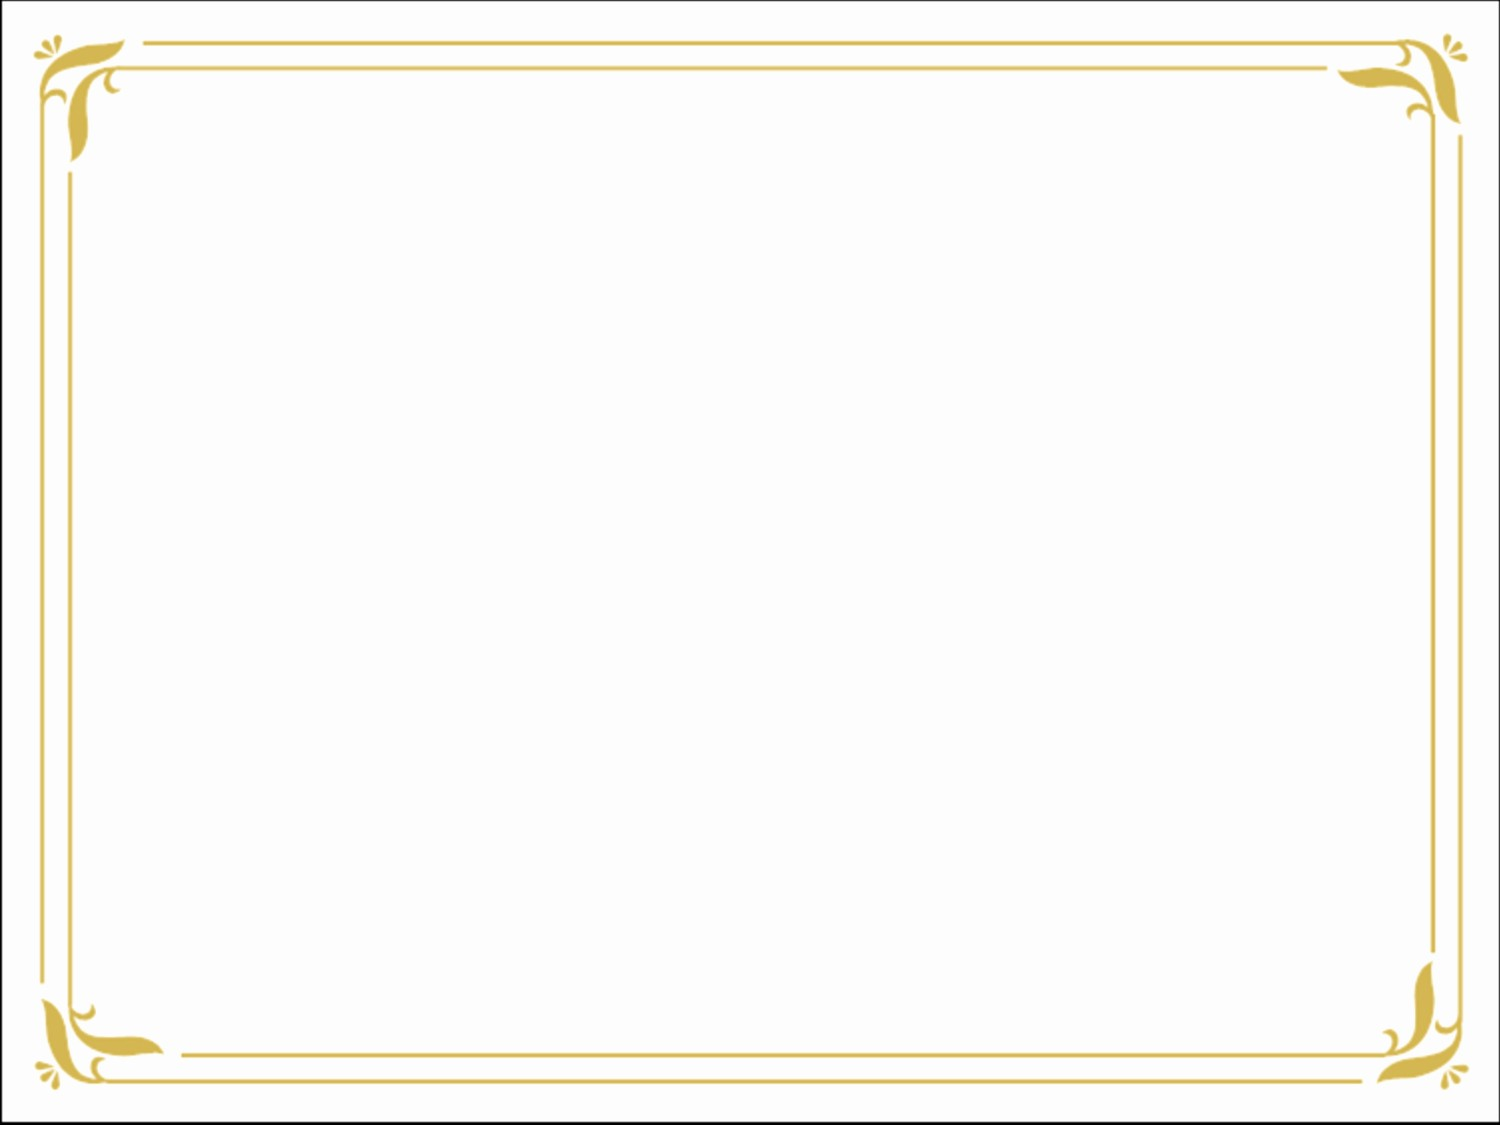 Free Printable Blank Certificate Borders Fresh Golden Border Certificate Templates